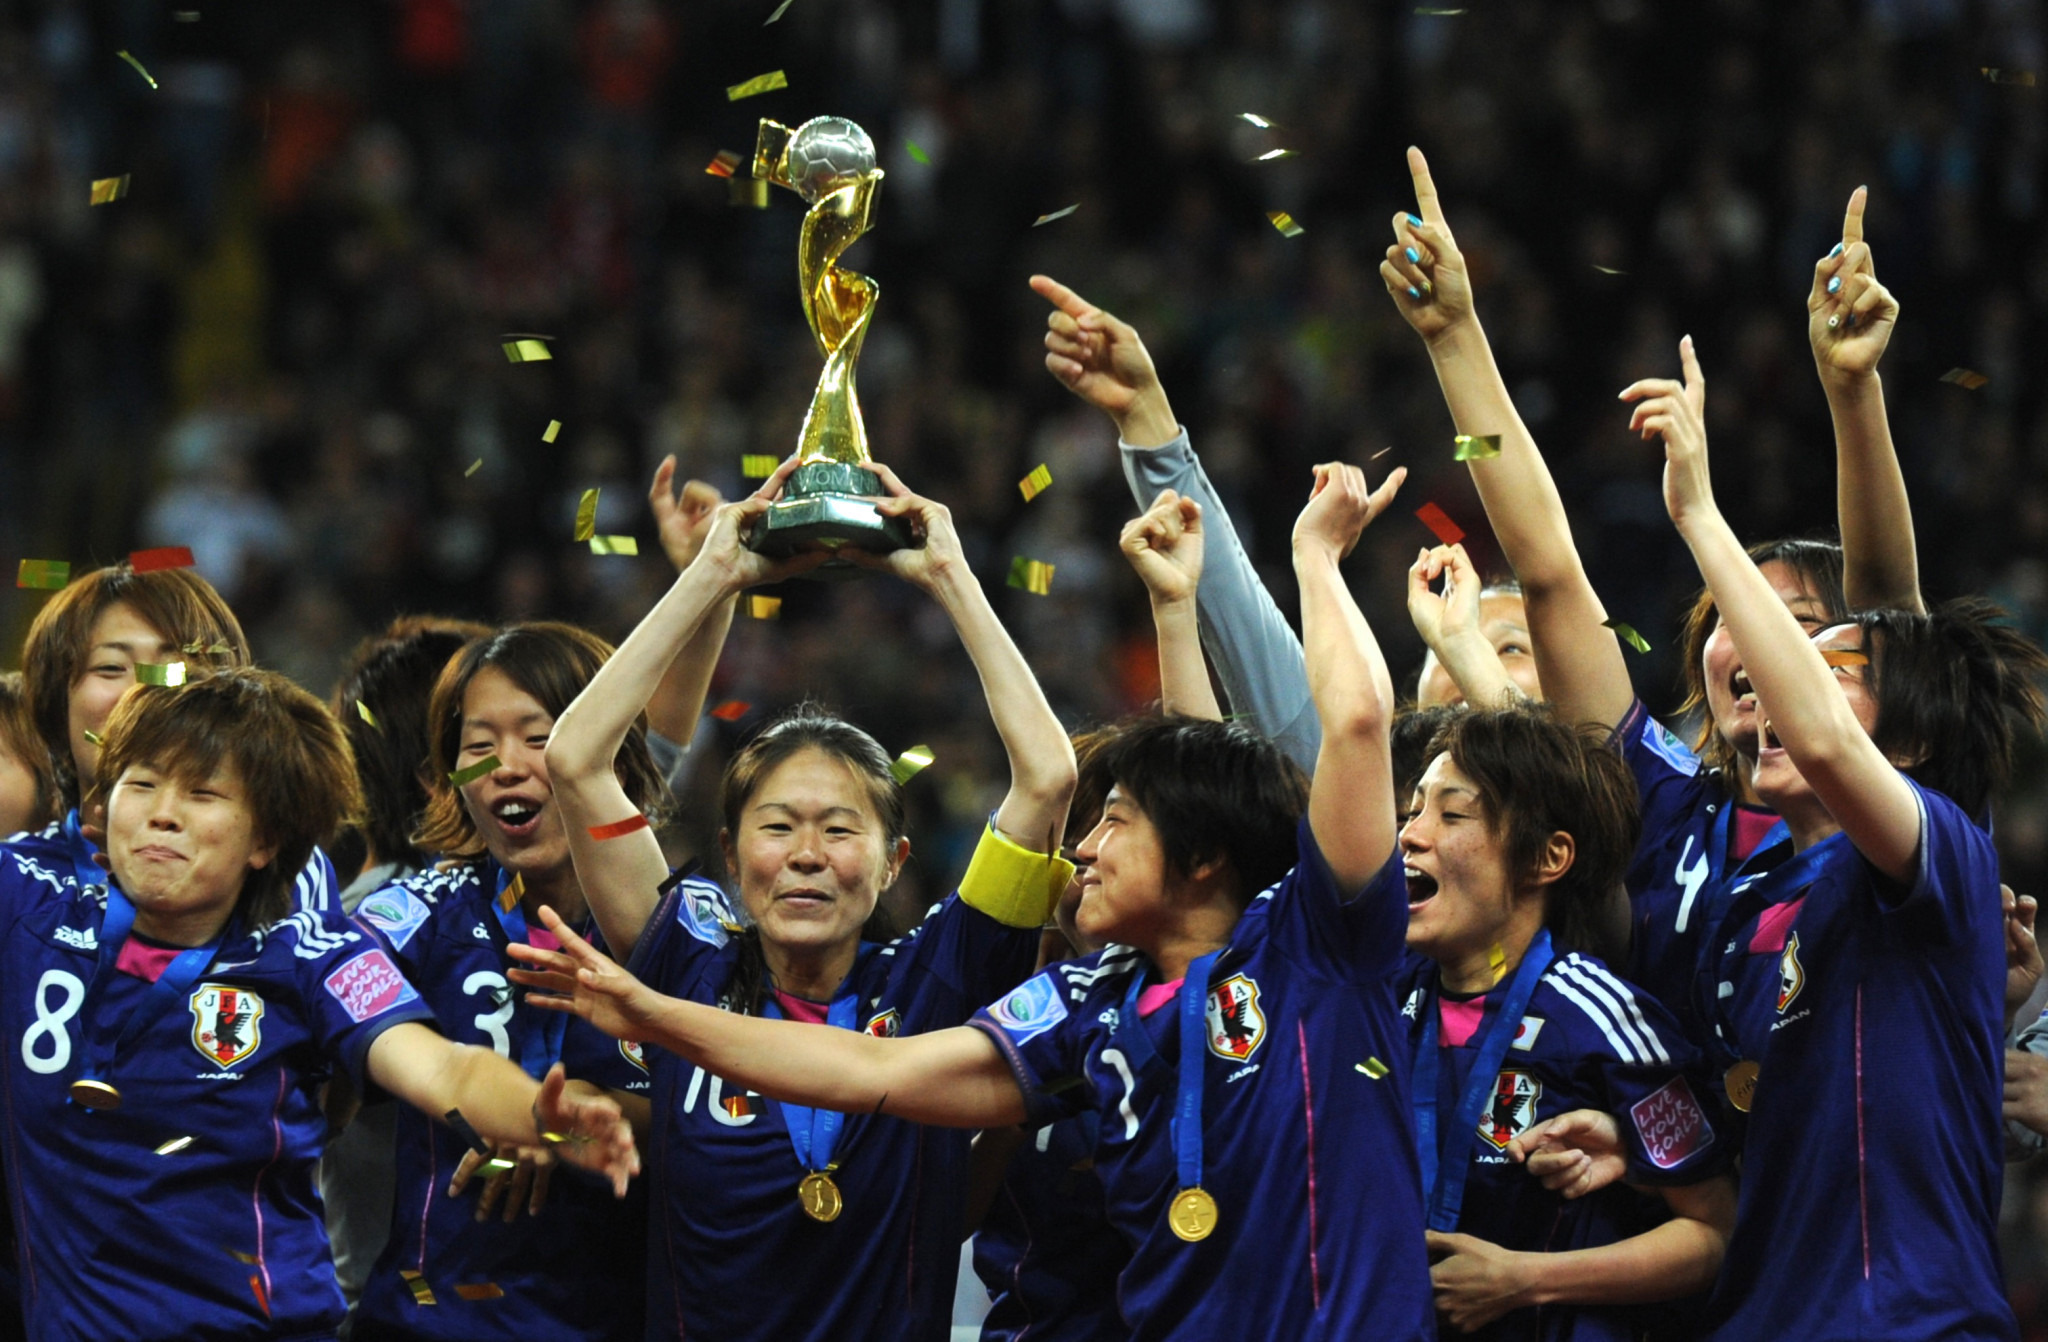 Noguchi and Women's World Cup winners tipped for key roles in Tokyo 2020 Torch Relay